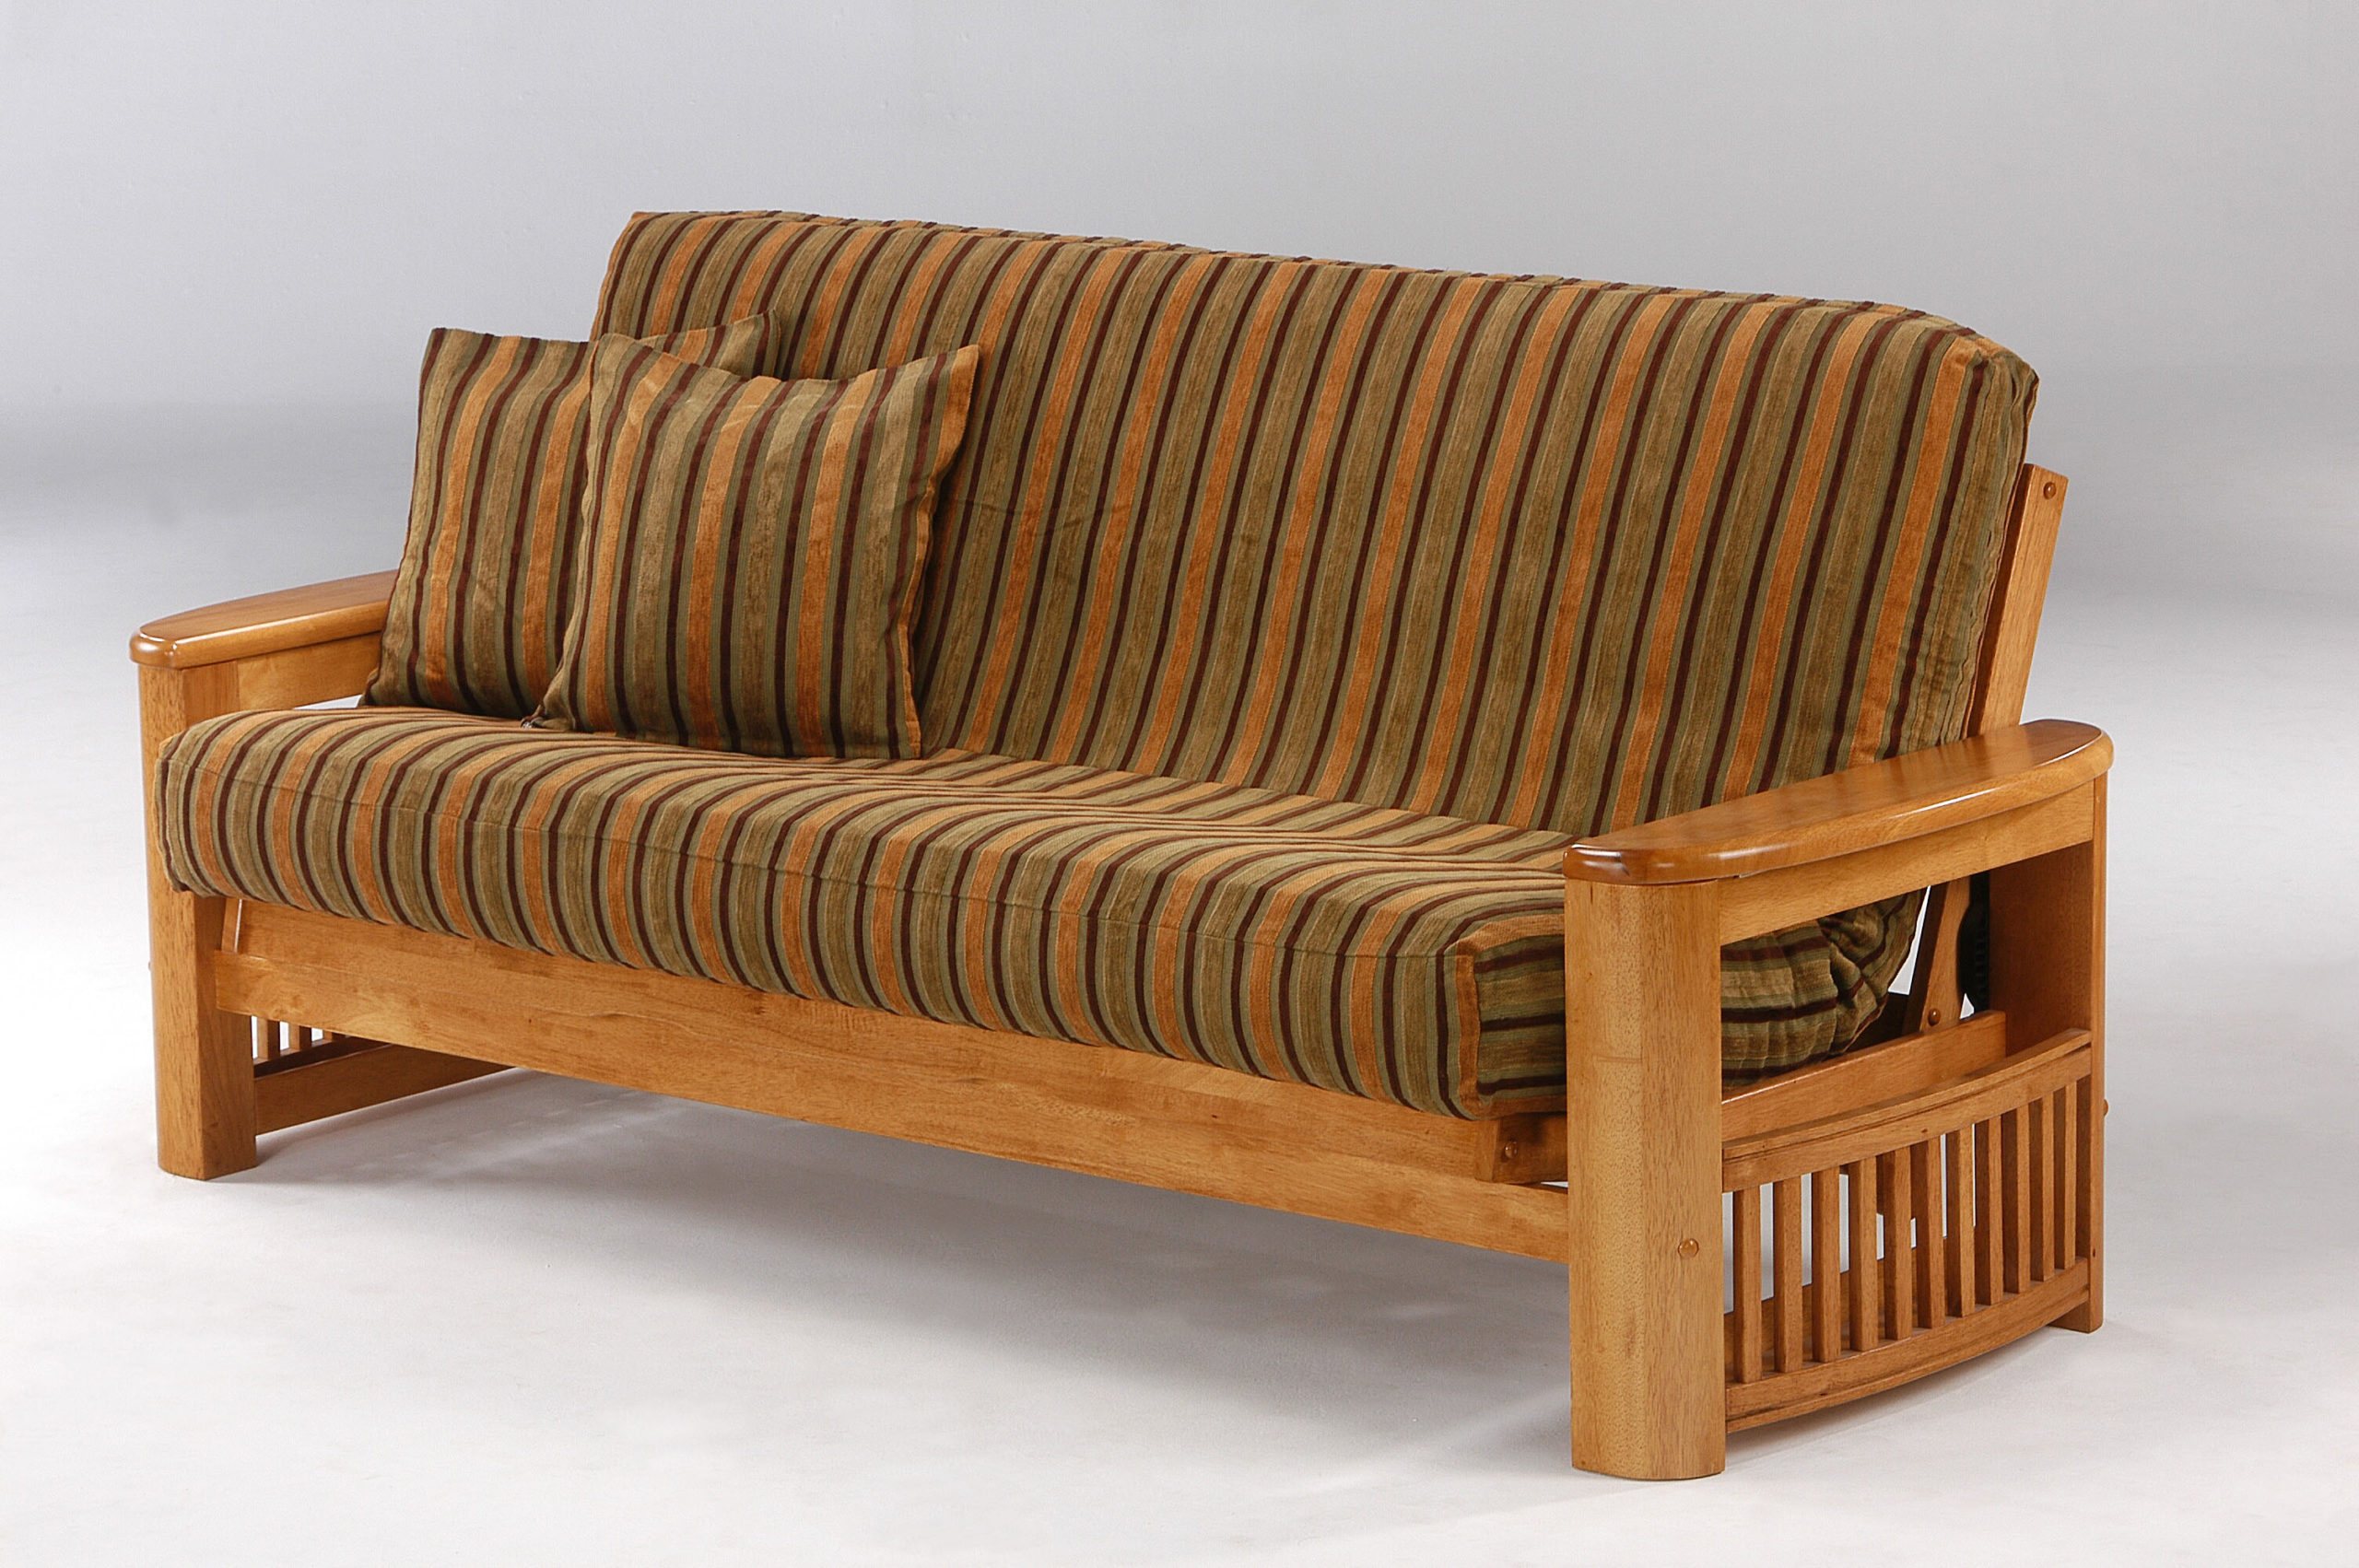 Fullsize Of Wood Futon Frame